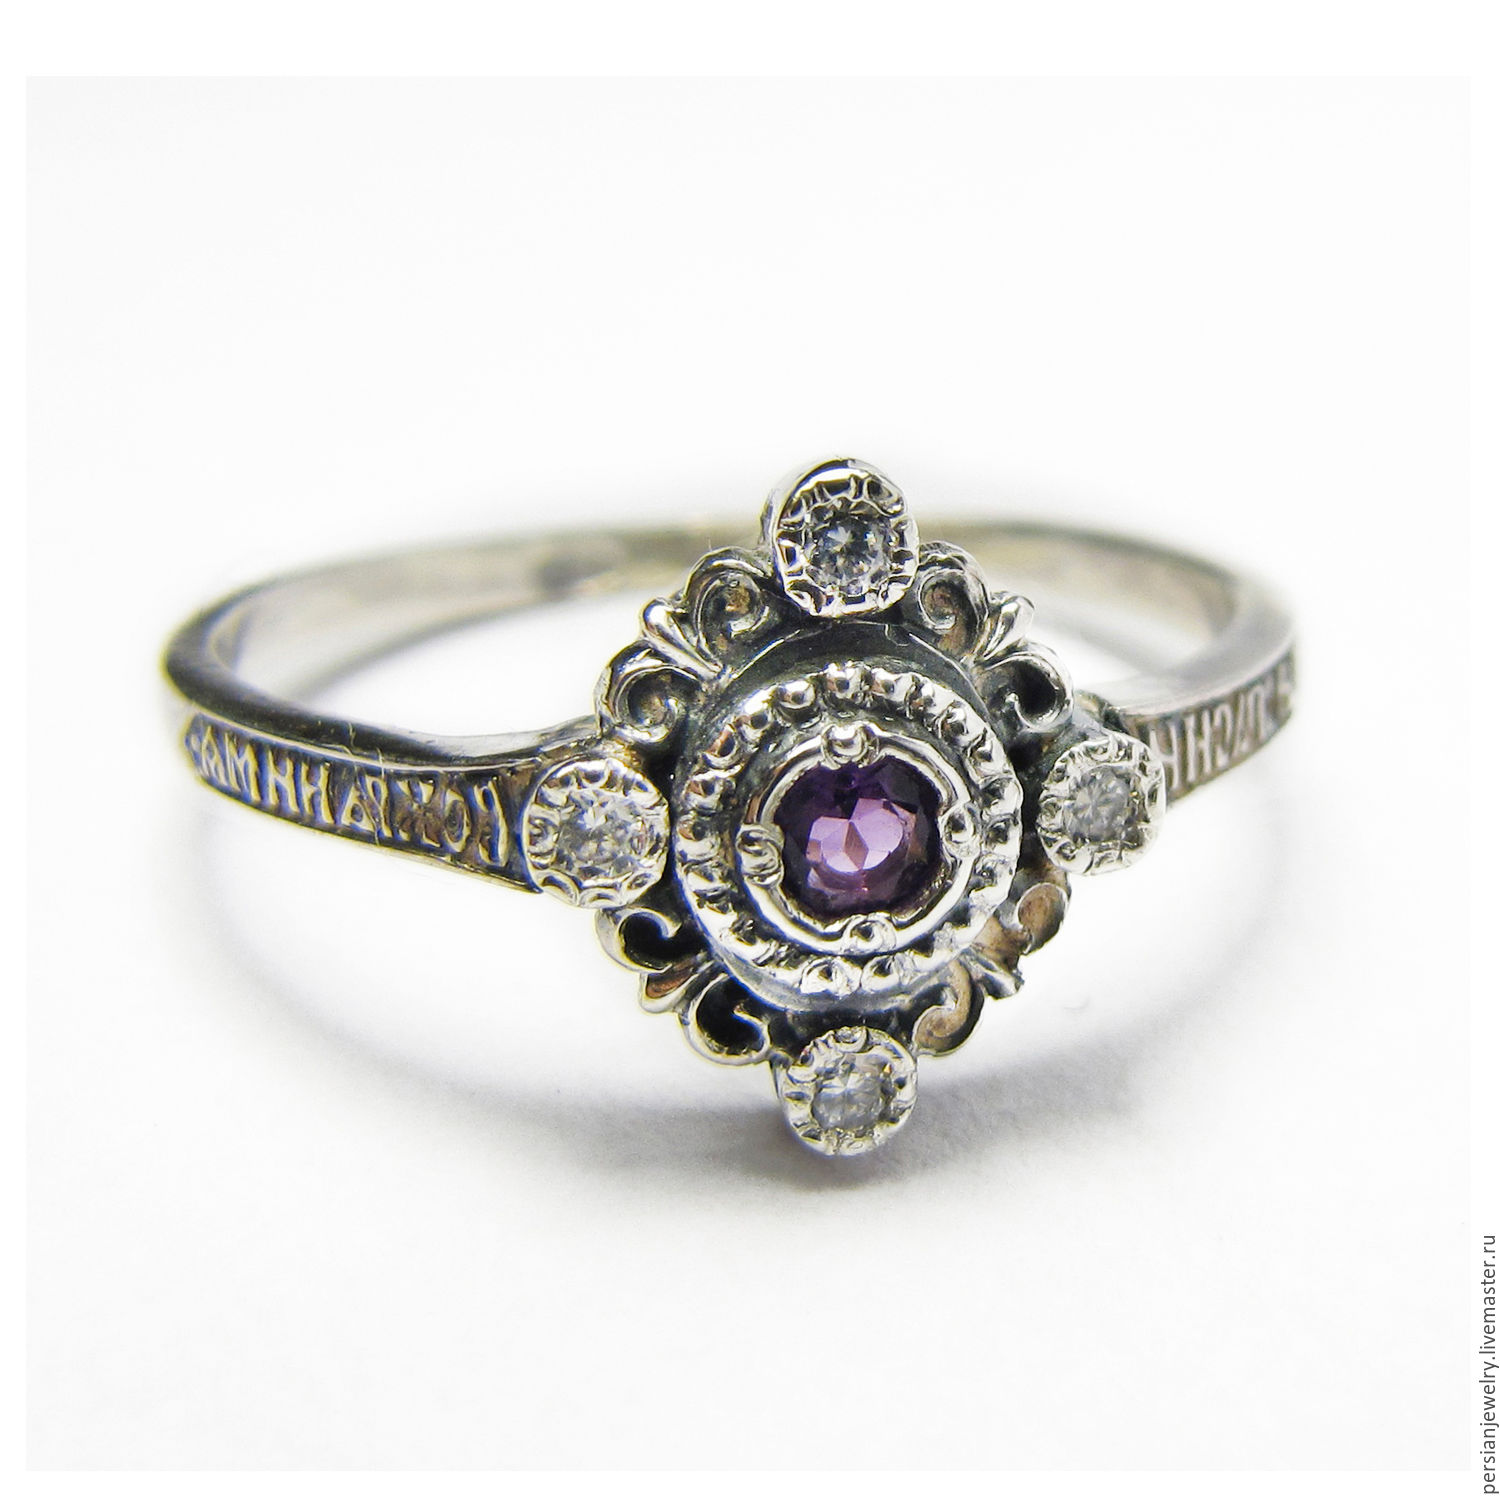 Silver ring with amethyst made of silver, Rings, Sevastopol,  Фото №1